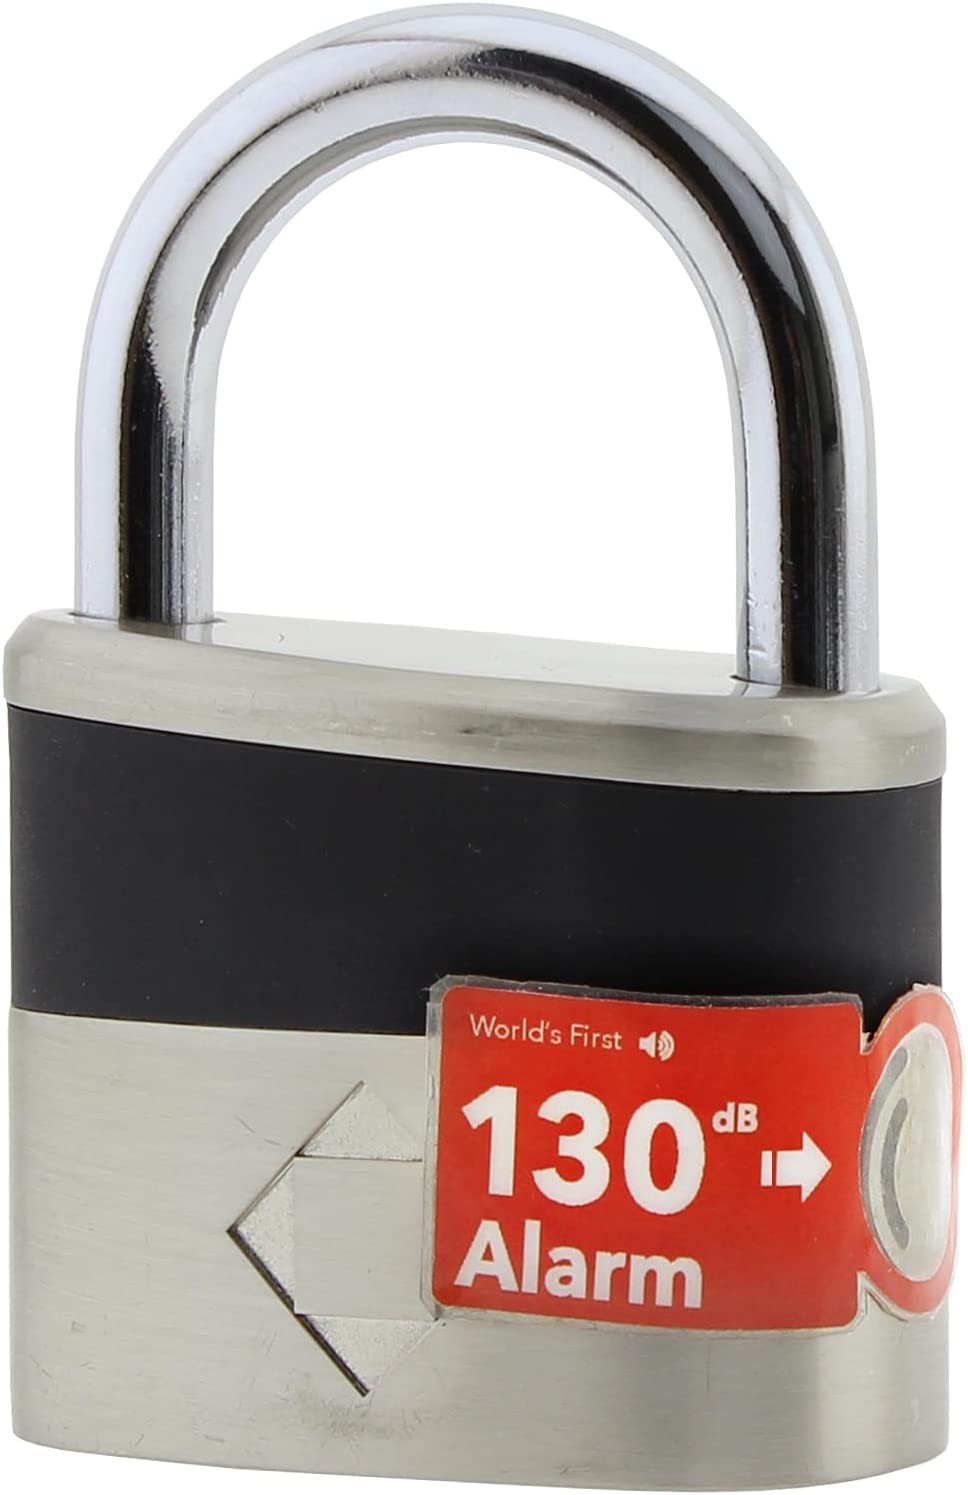 Crystal Vision Max 42% OFF Nashville-Davidson Mall Anti-Theft Loud 130db Alarm Lock Weather He Proof